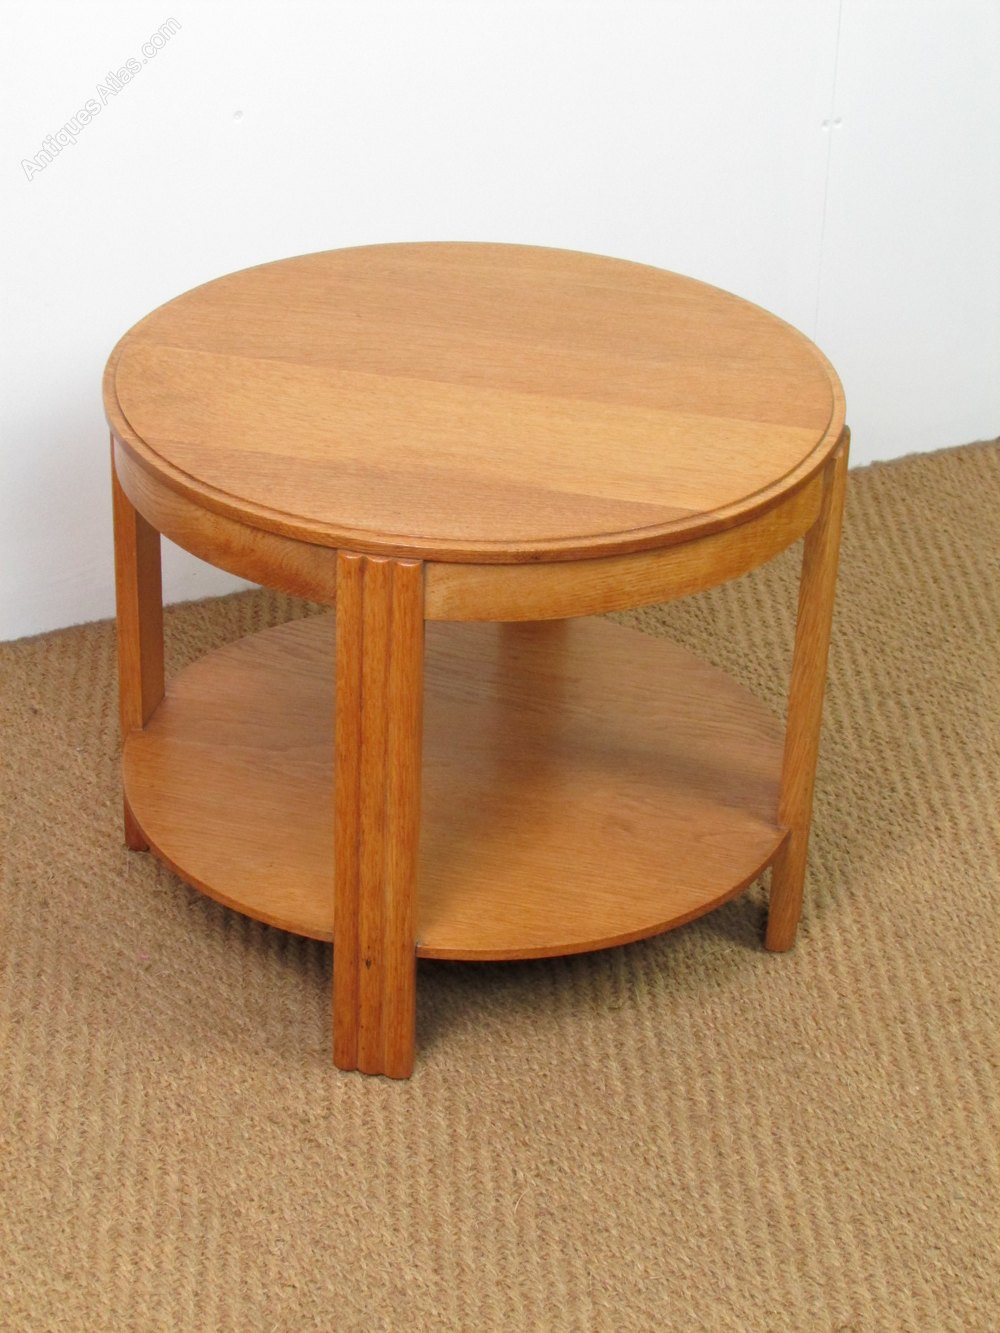 Art Deco Oak Coffee Side Table Antiques Atlas: coffee table antique